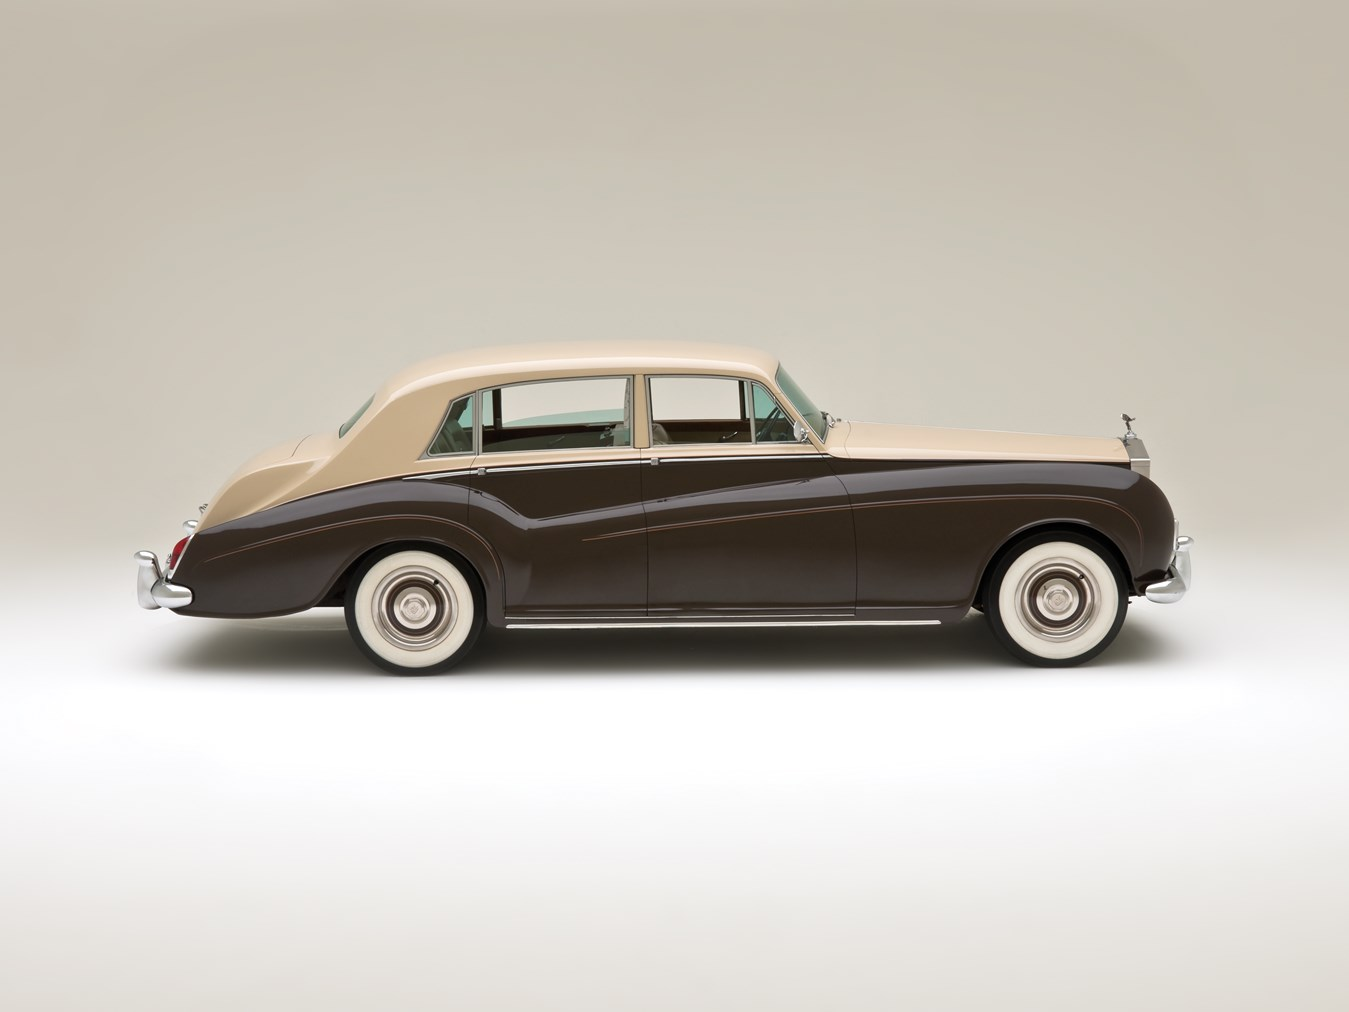 1966 Rolls-Royce Silver Cloud III Touring Limousine profile